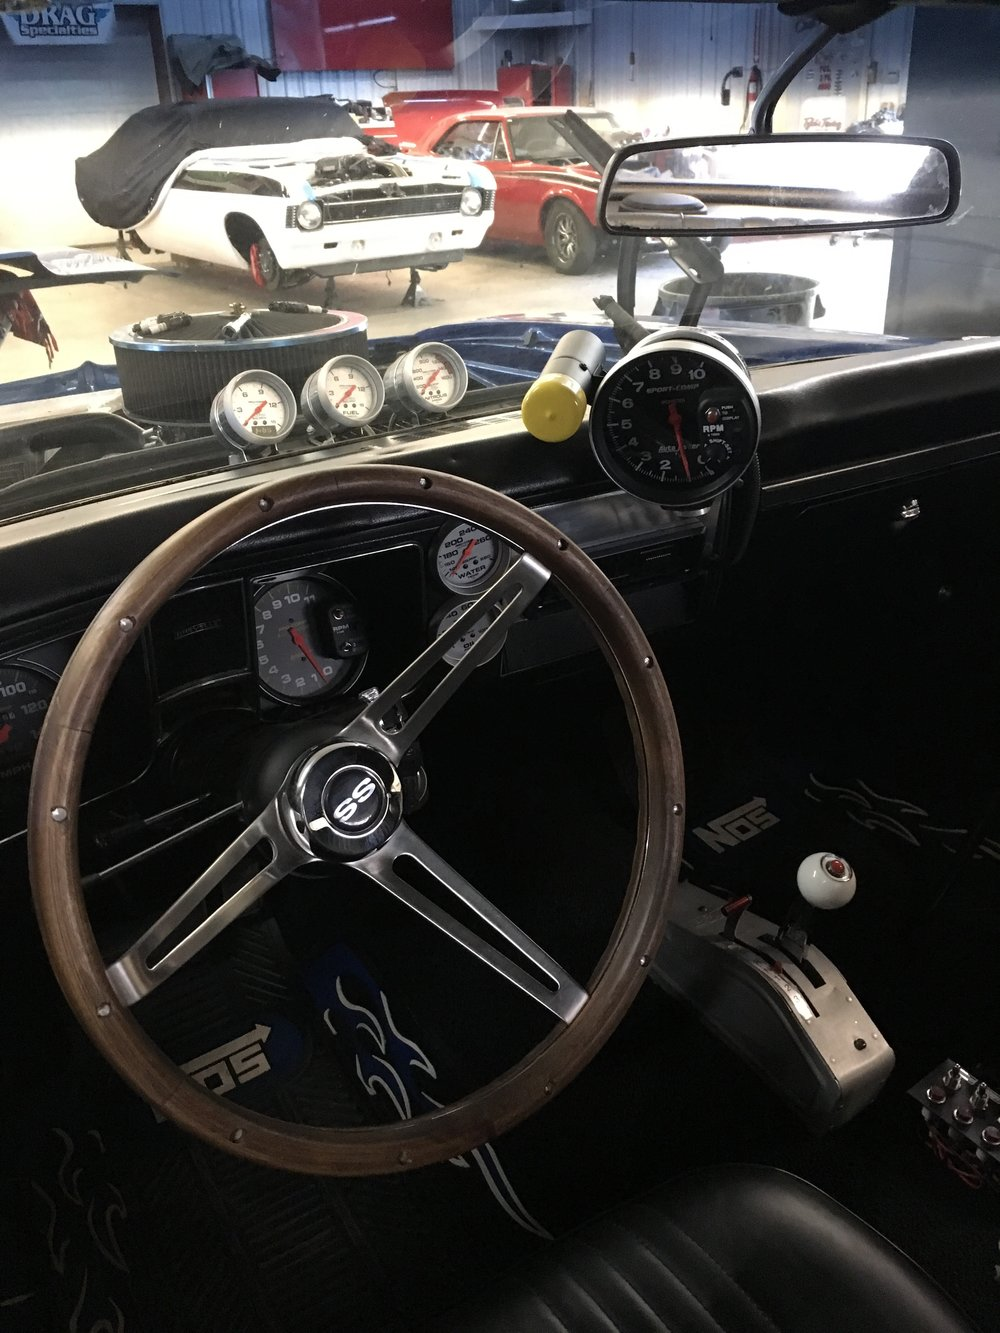 1968-chevelle-yenko-minneapolis-hot-rod-factory-car-restoration-interior.jpg